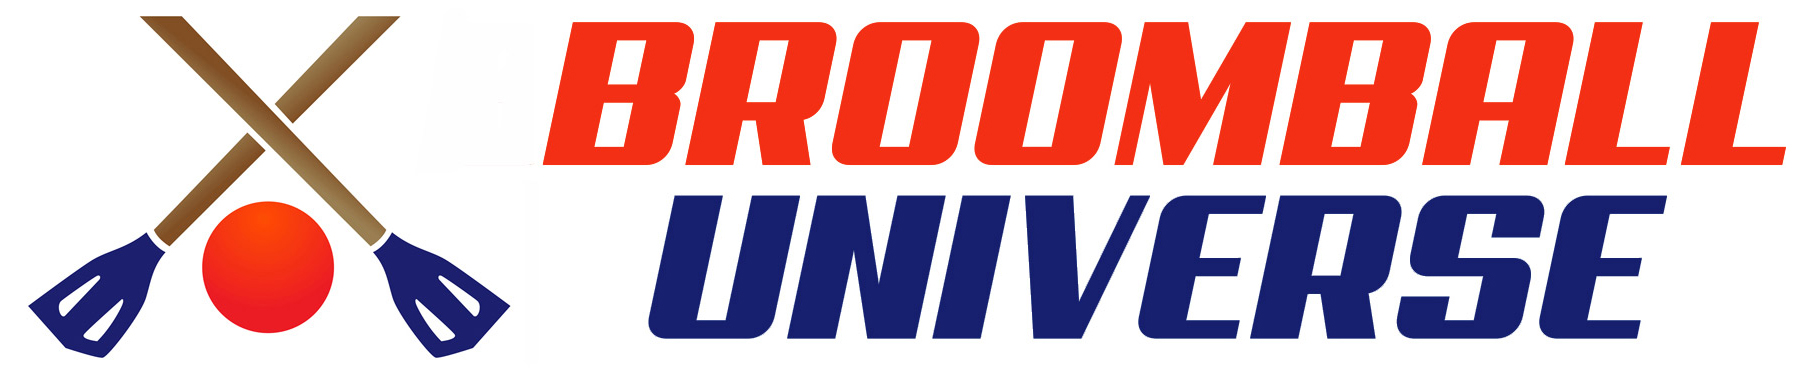 broomball universe header